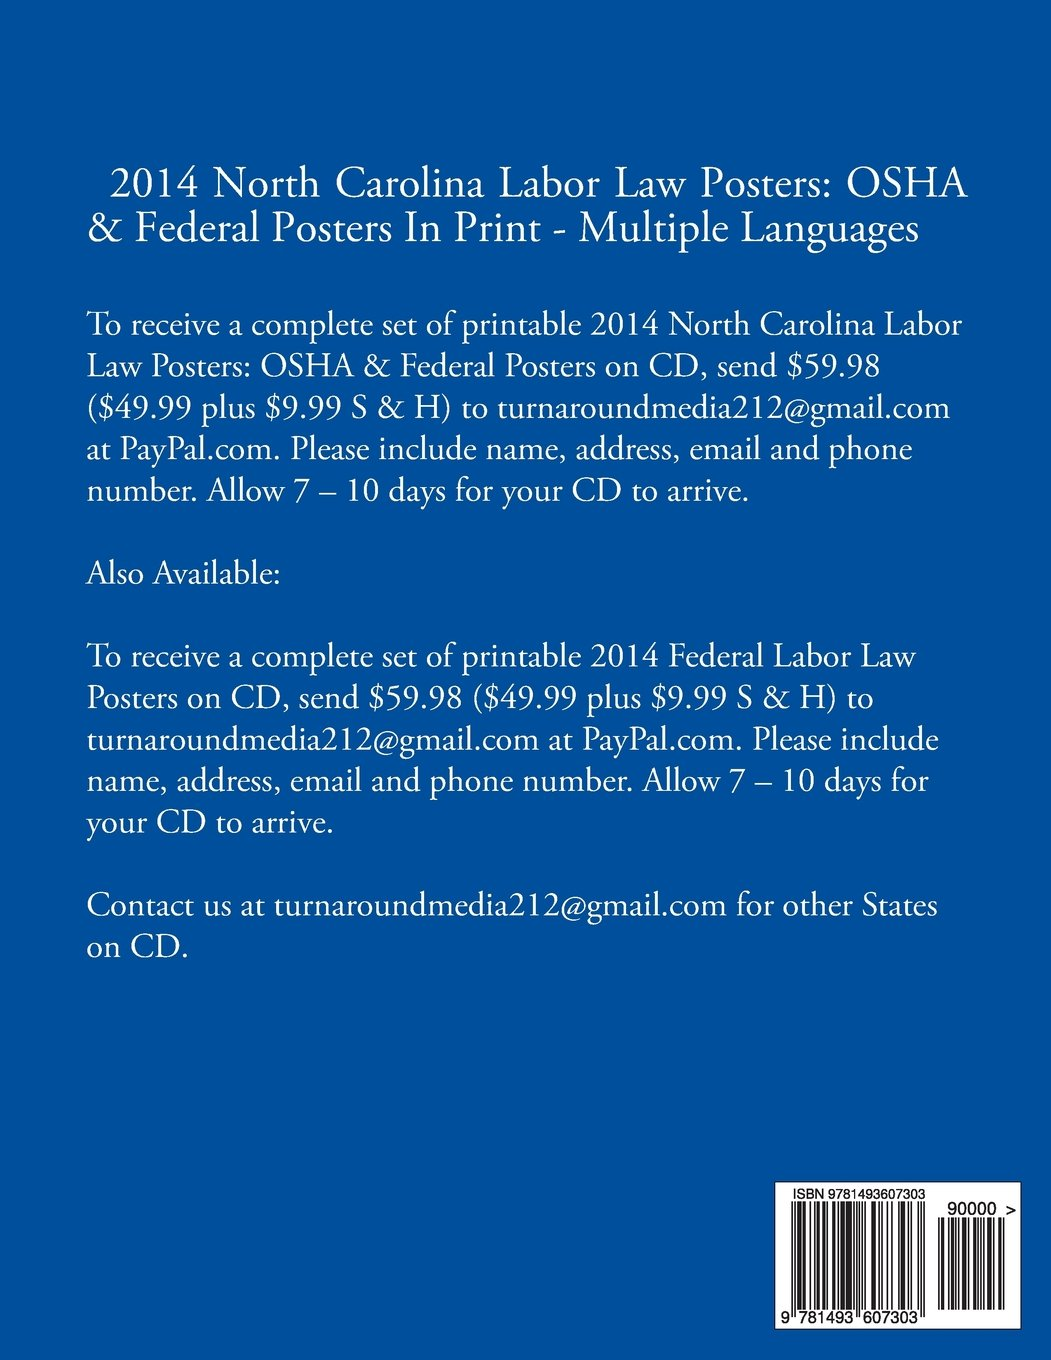 2014 North Carolina Labor Law Posters: OSHA & Federal Posters In Print - Multiple Languages (Multilingual Edition) by CreateSpace Independent Publishing Platform